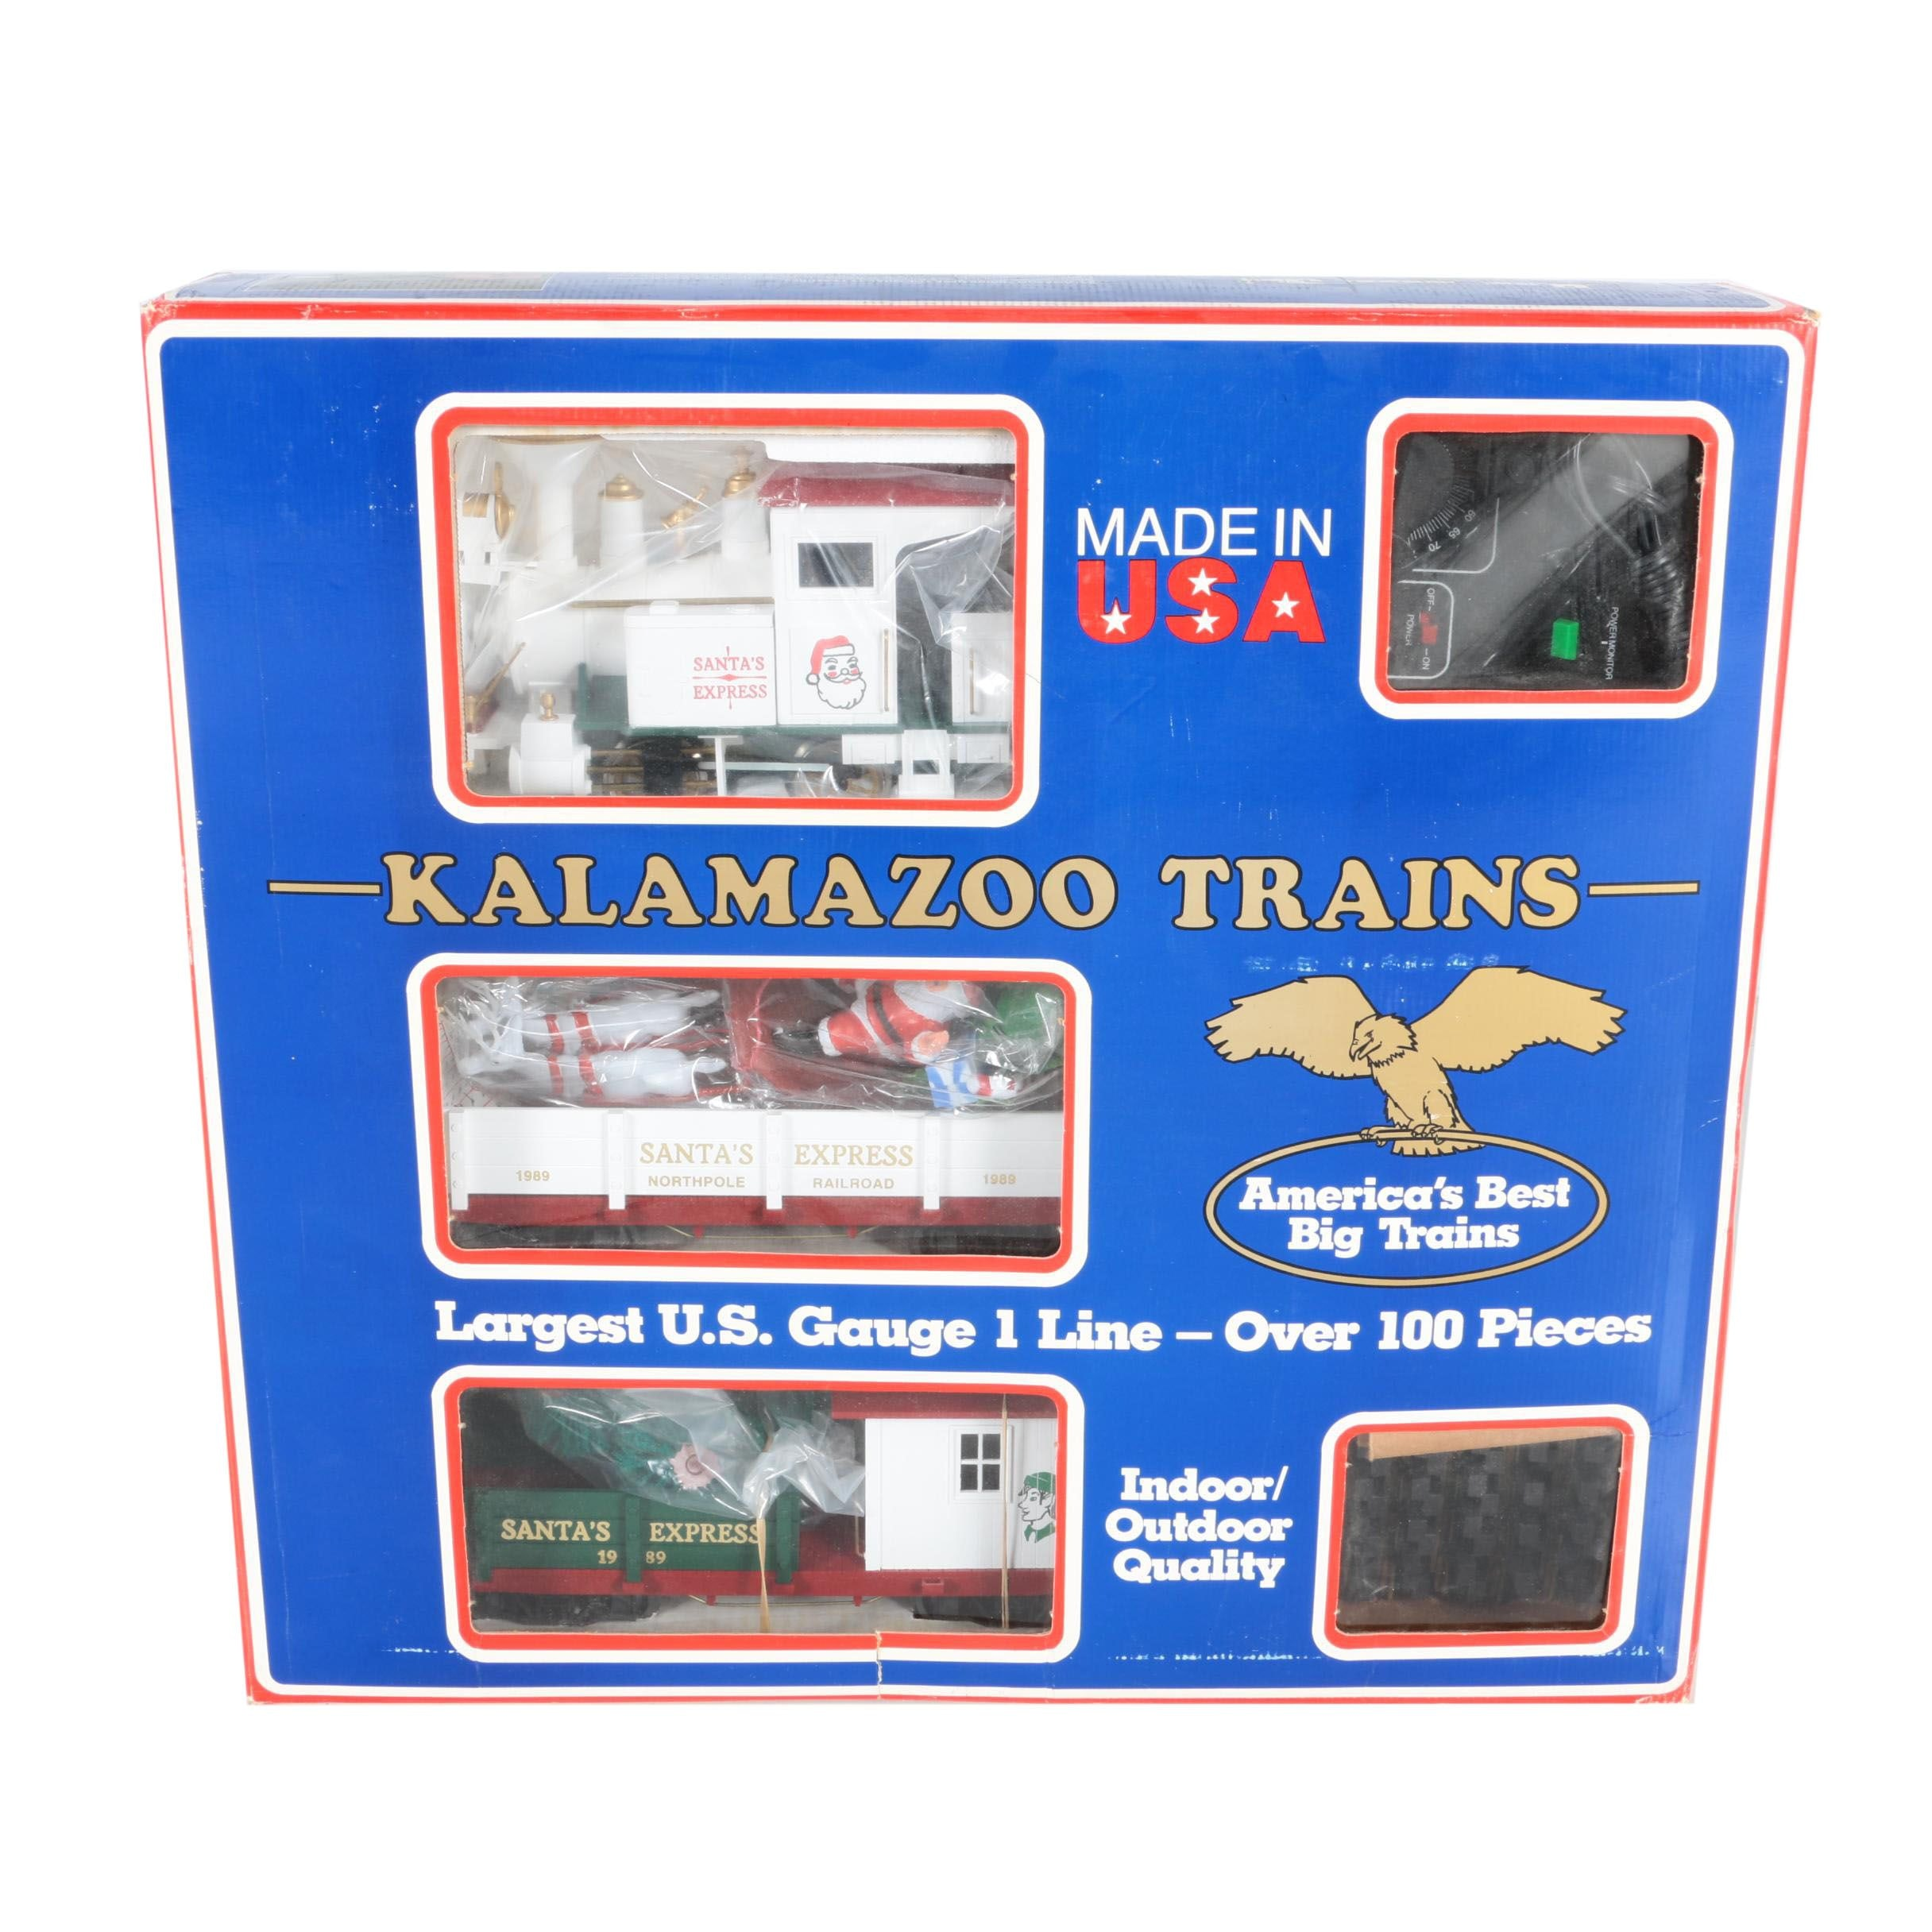 Santa's Express by Kalamazoo Trains